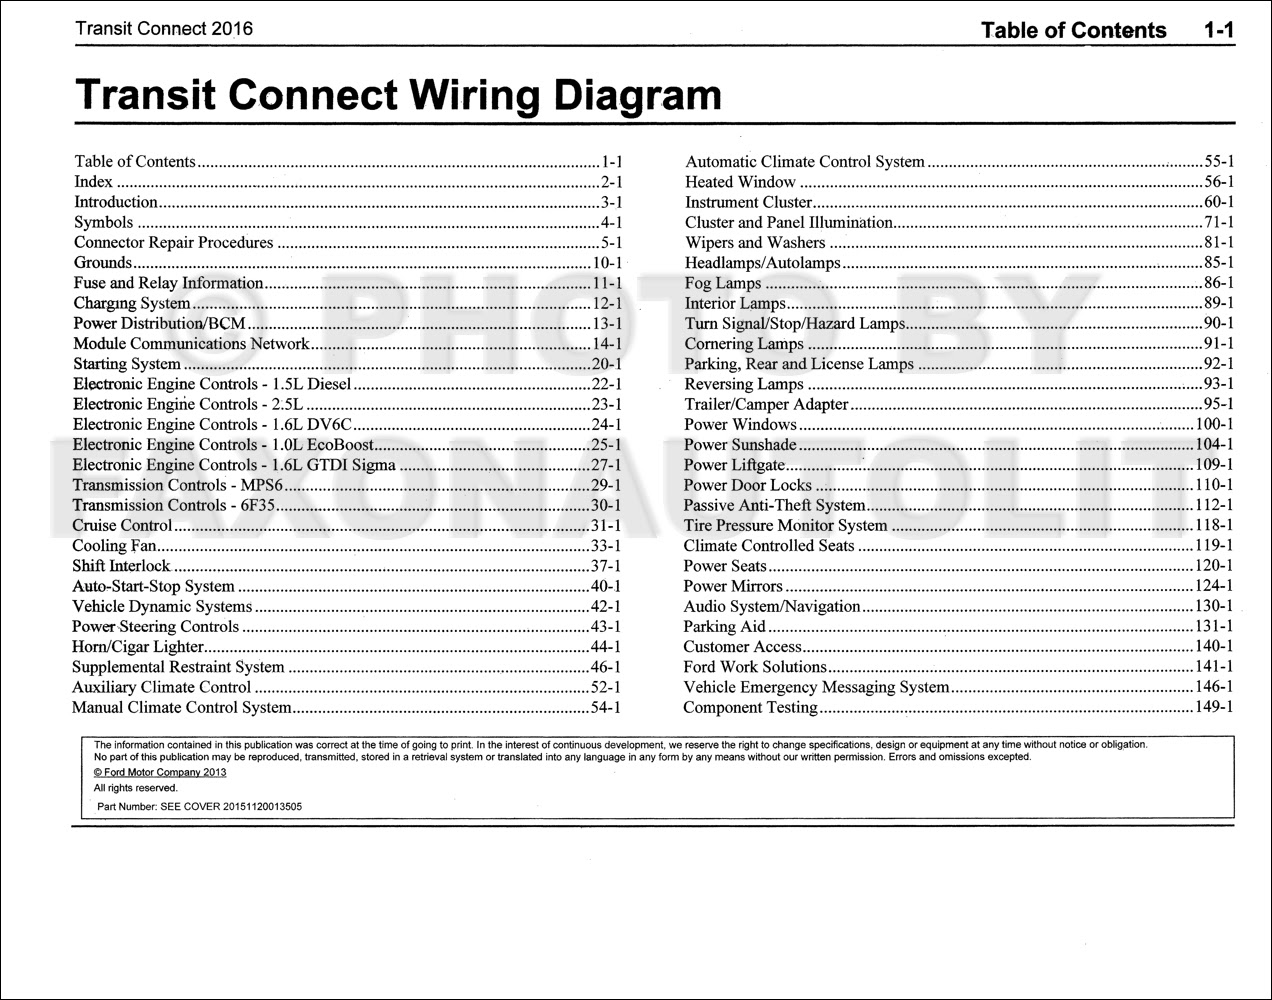 2014 Ford Transit Connect Wiring 88 K5 Blazer Wiring Diagram Begeboy Wiring Diagram Source